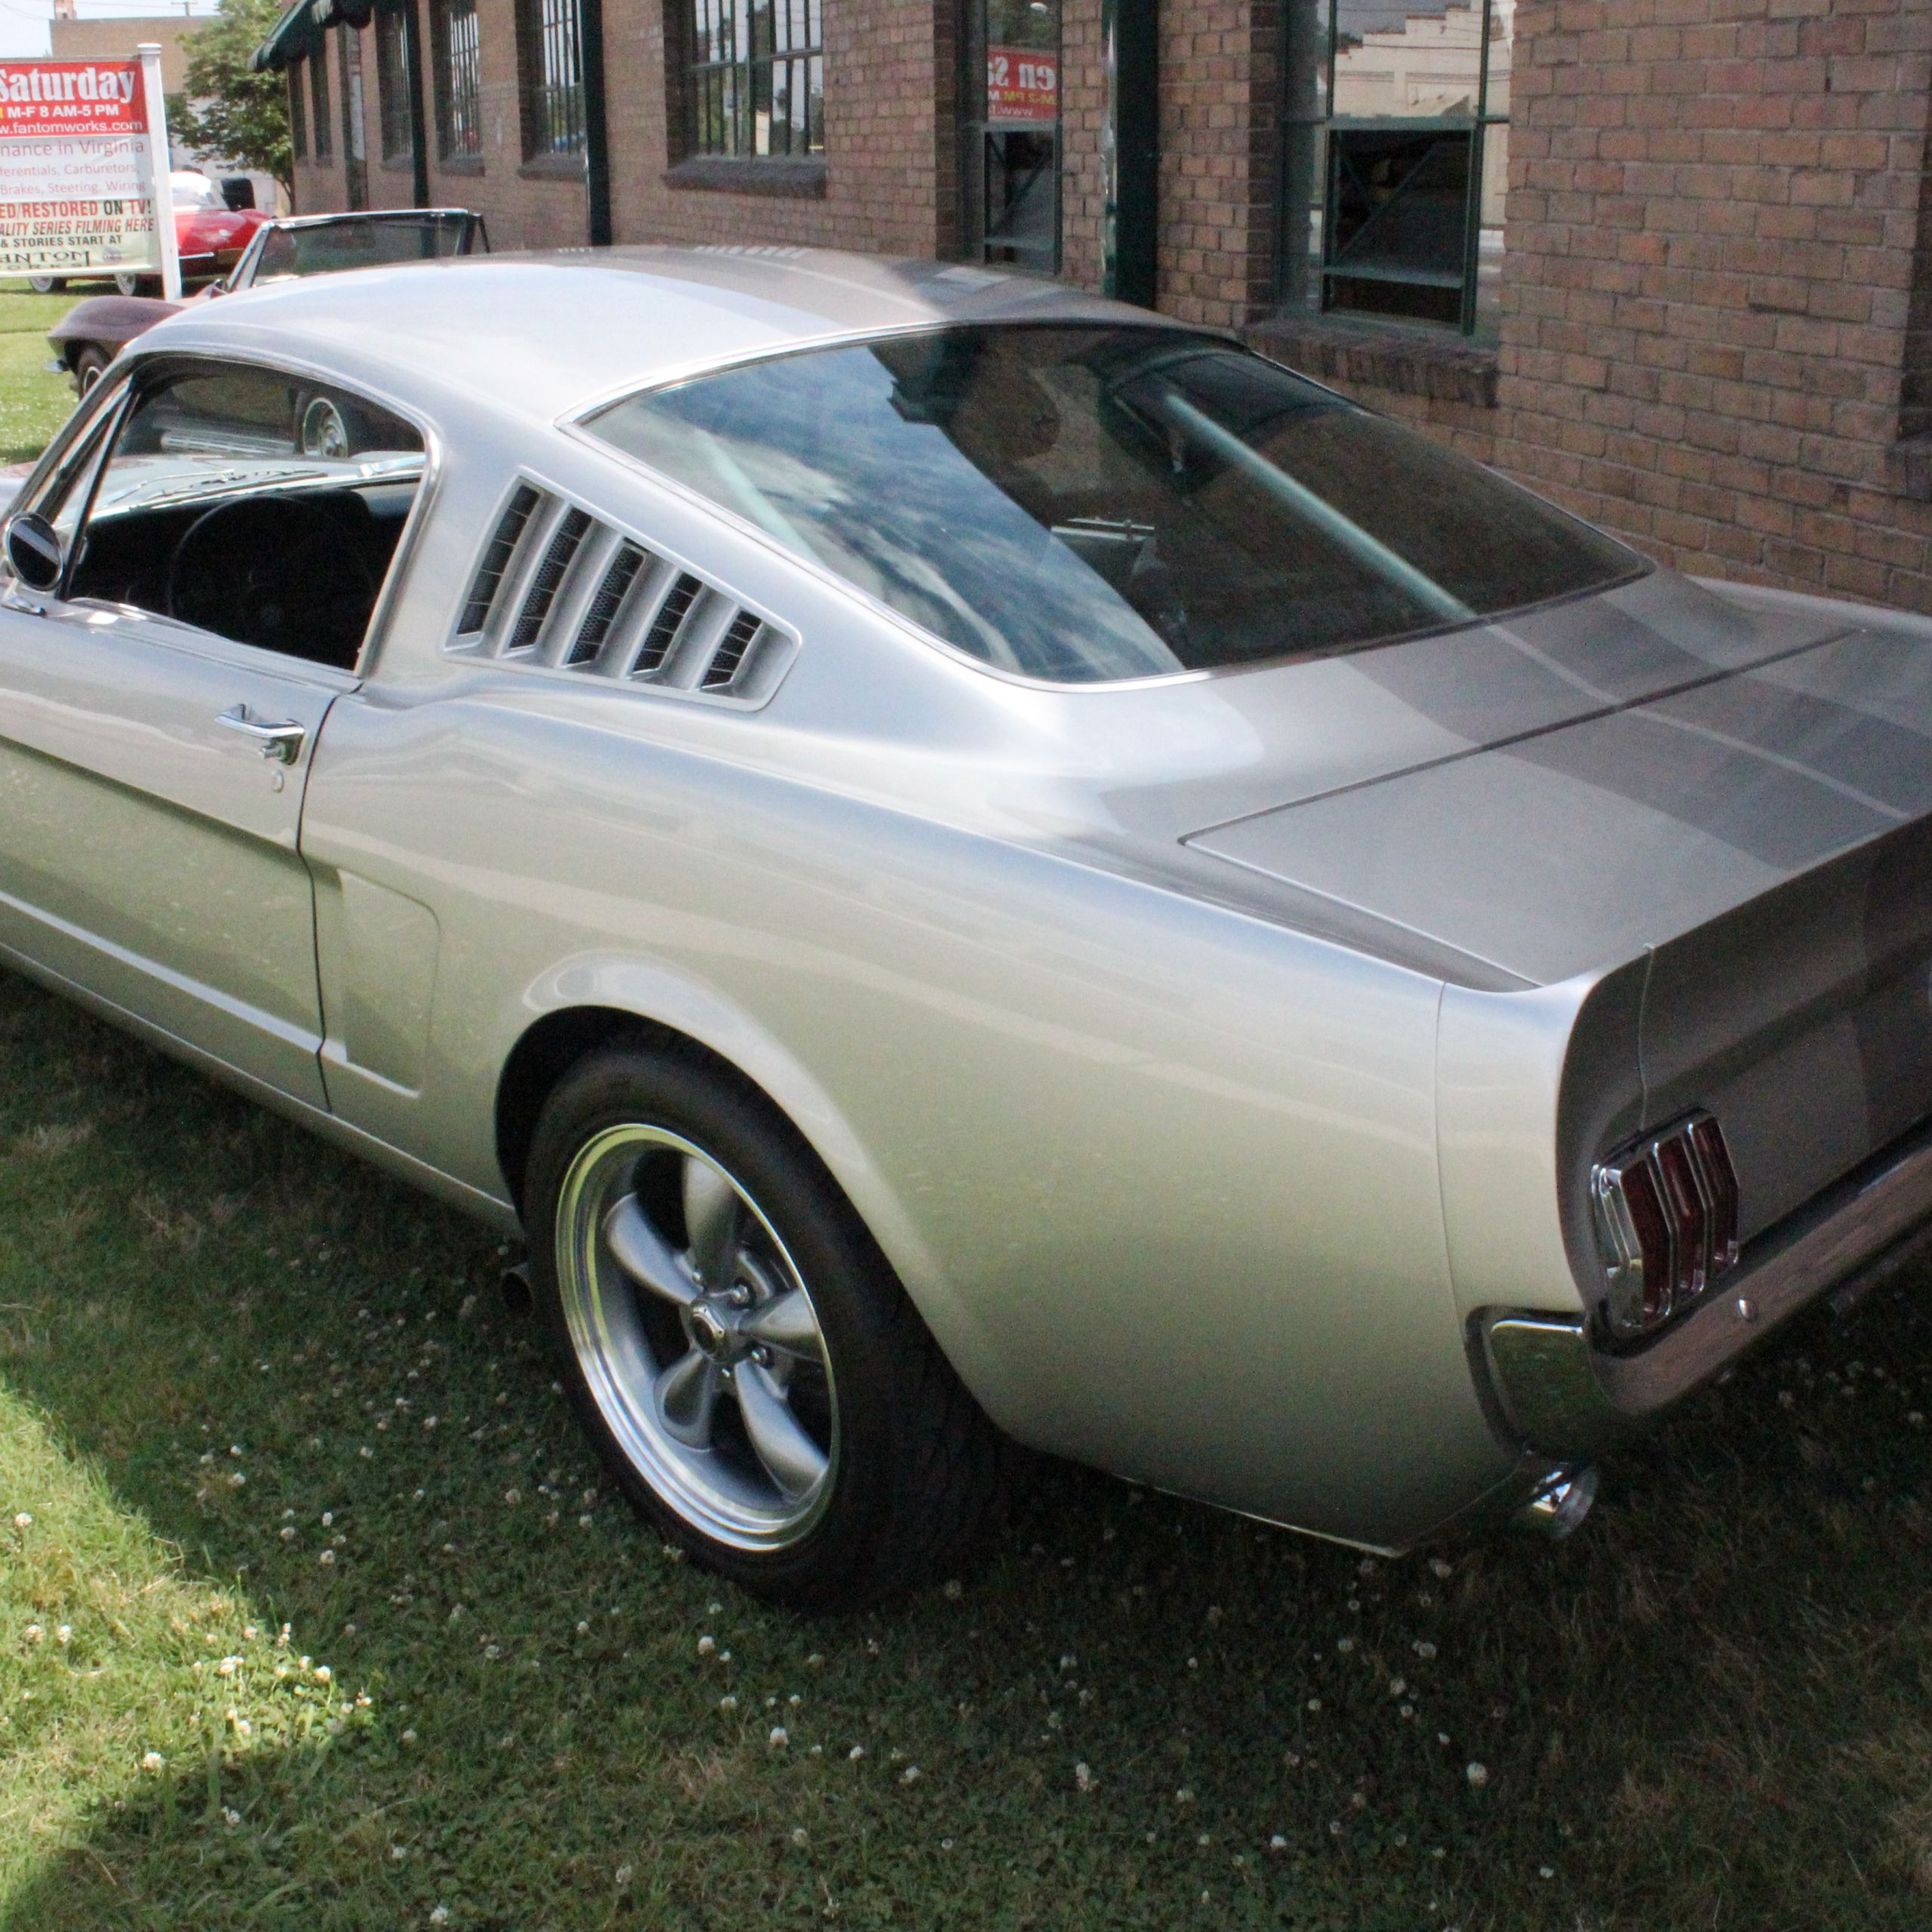 1965 Ford Mustang Fastback CW 06 Finish 010